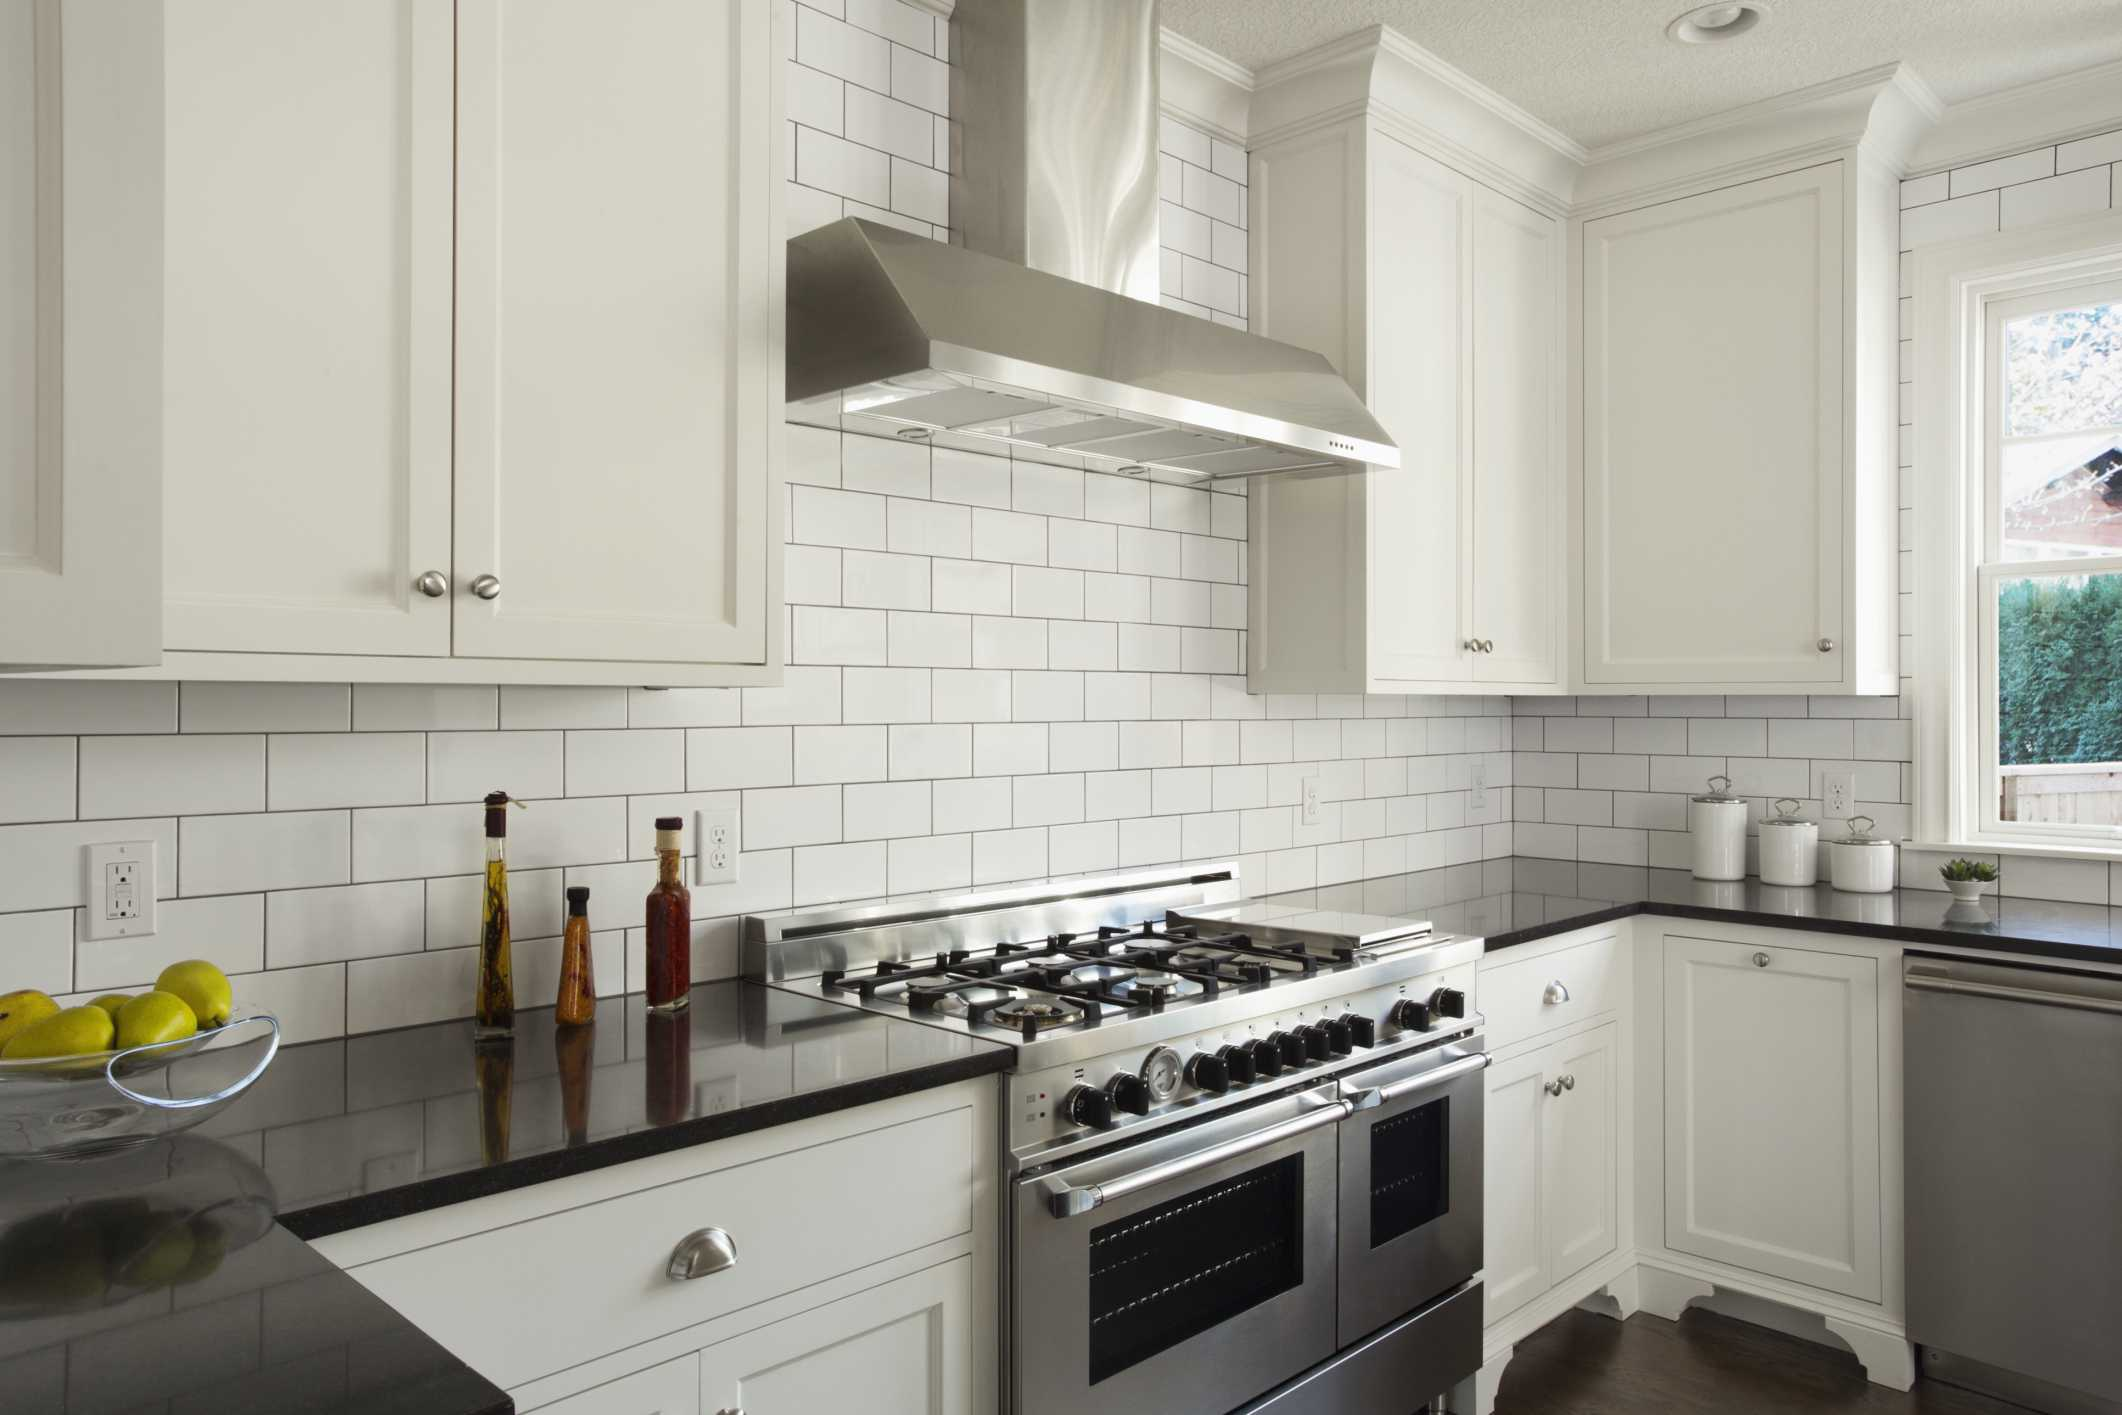 Modern Kitchen With White Subway Tile 56a49fe65f9b58b7d0d7e2d4